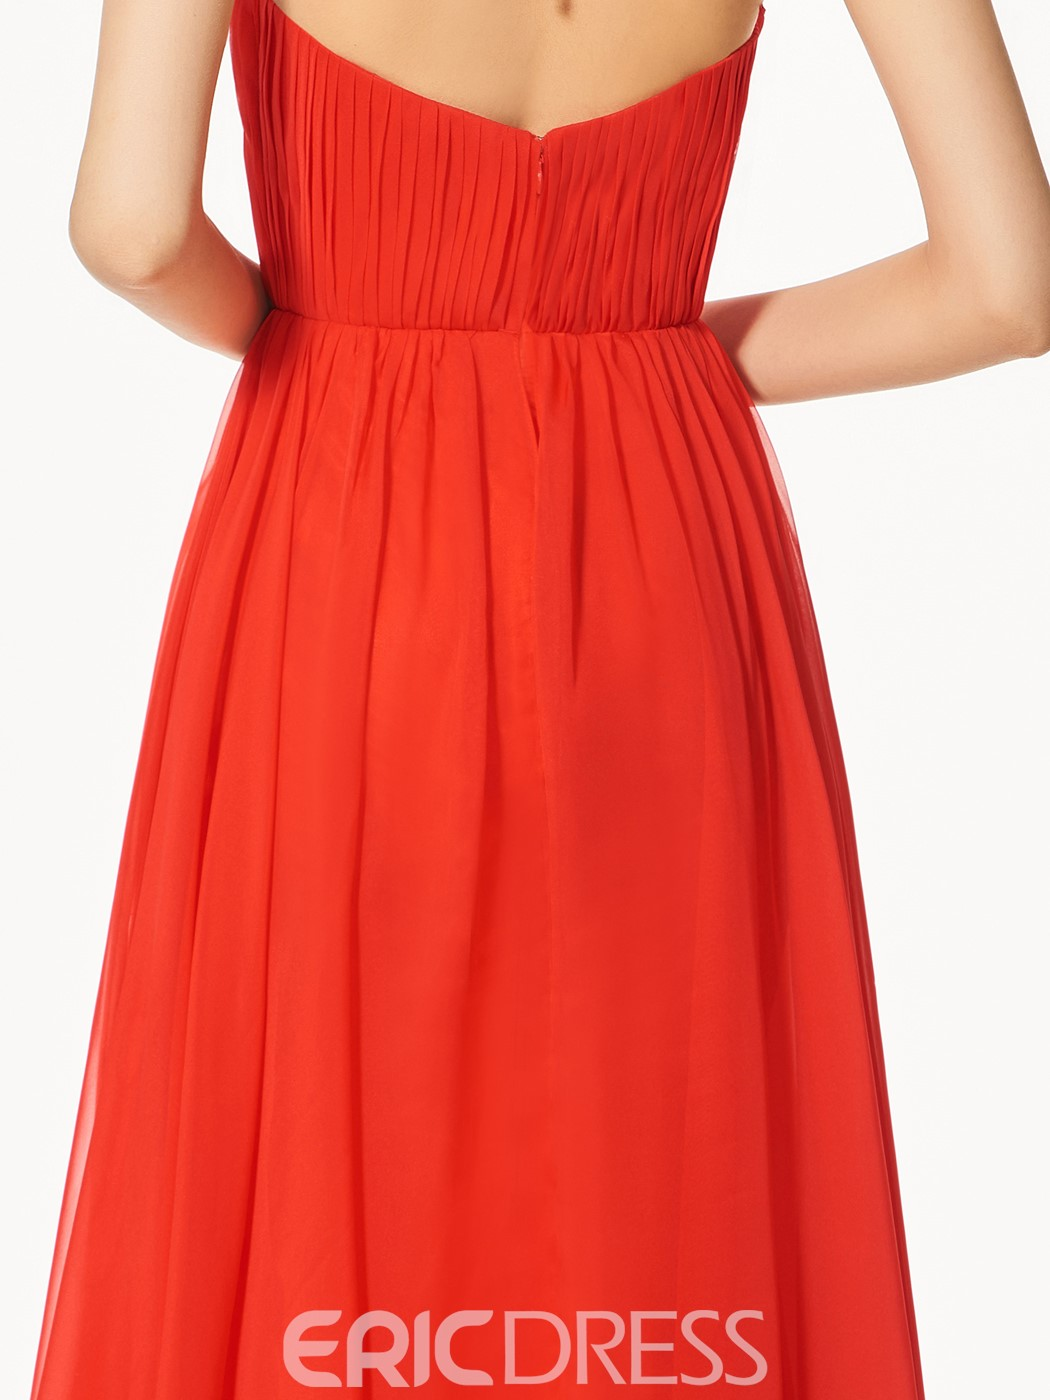 Ericdress A-Line Halter Appliques Backless Prom Dress In Floor-Length